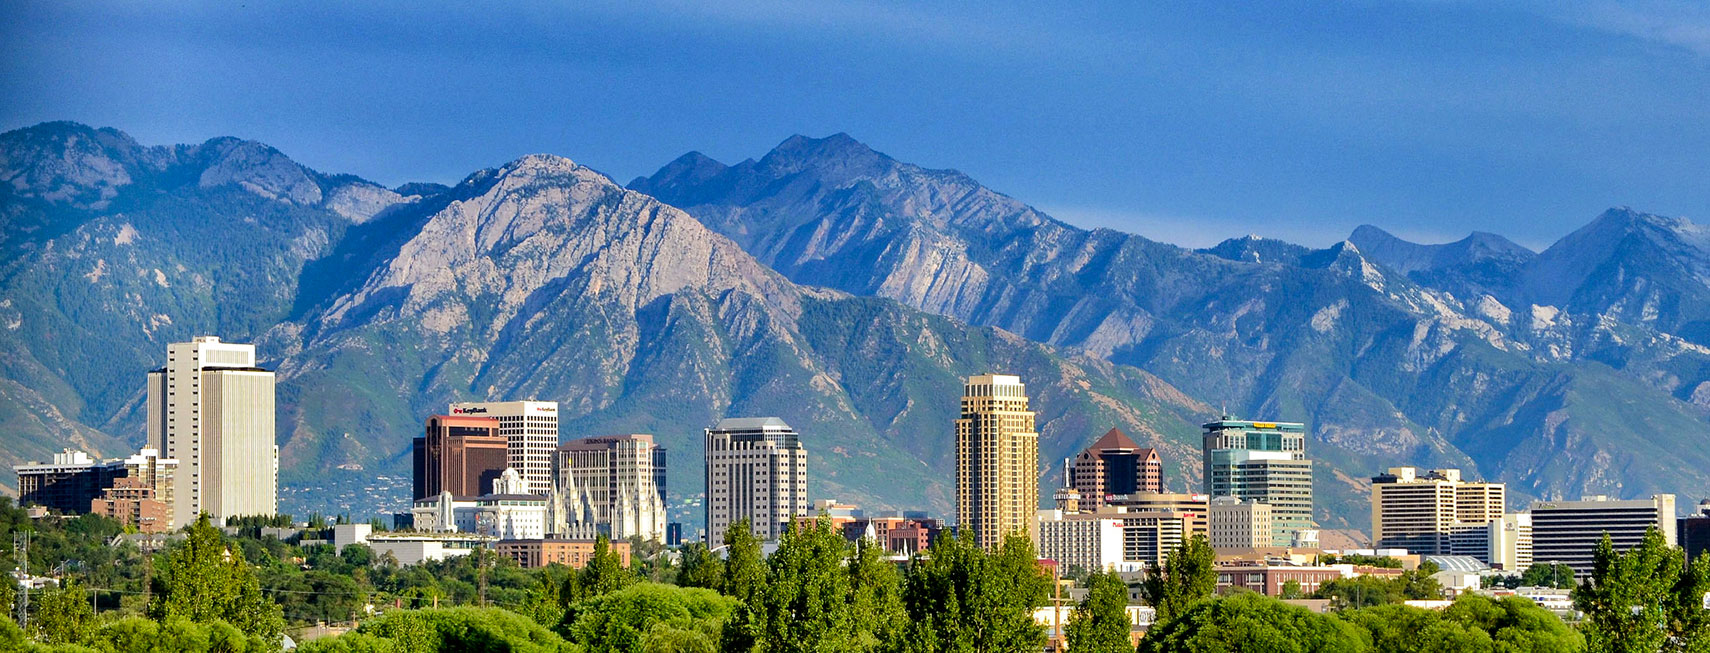 Salt Lake City skyline with Wasatch Mountain